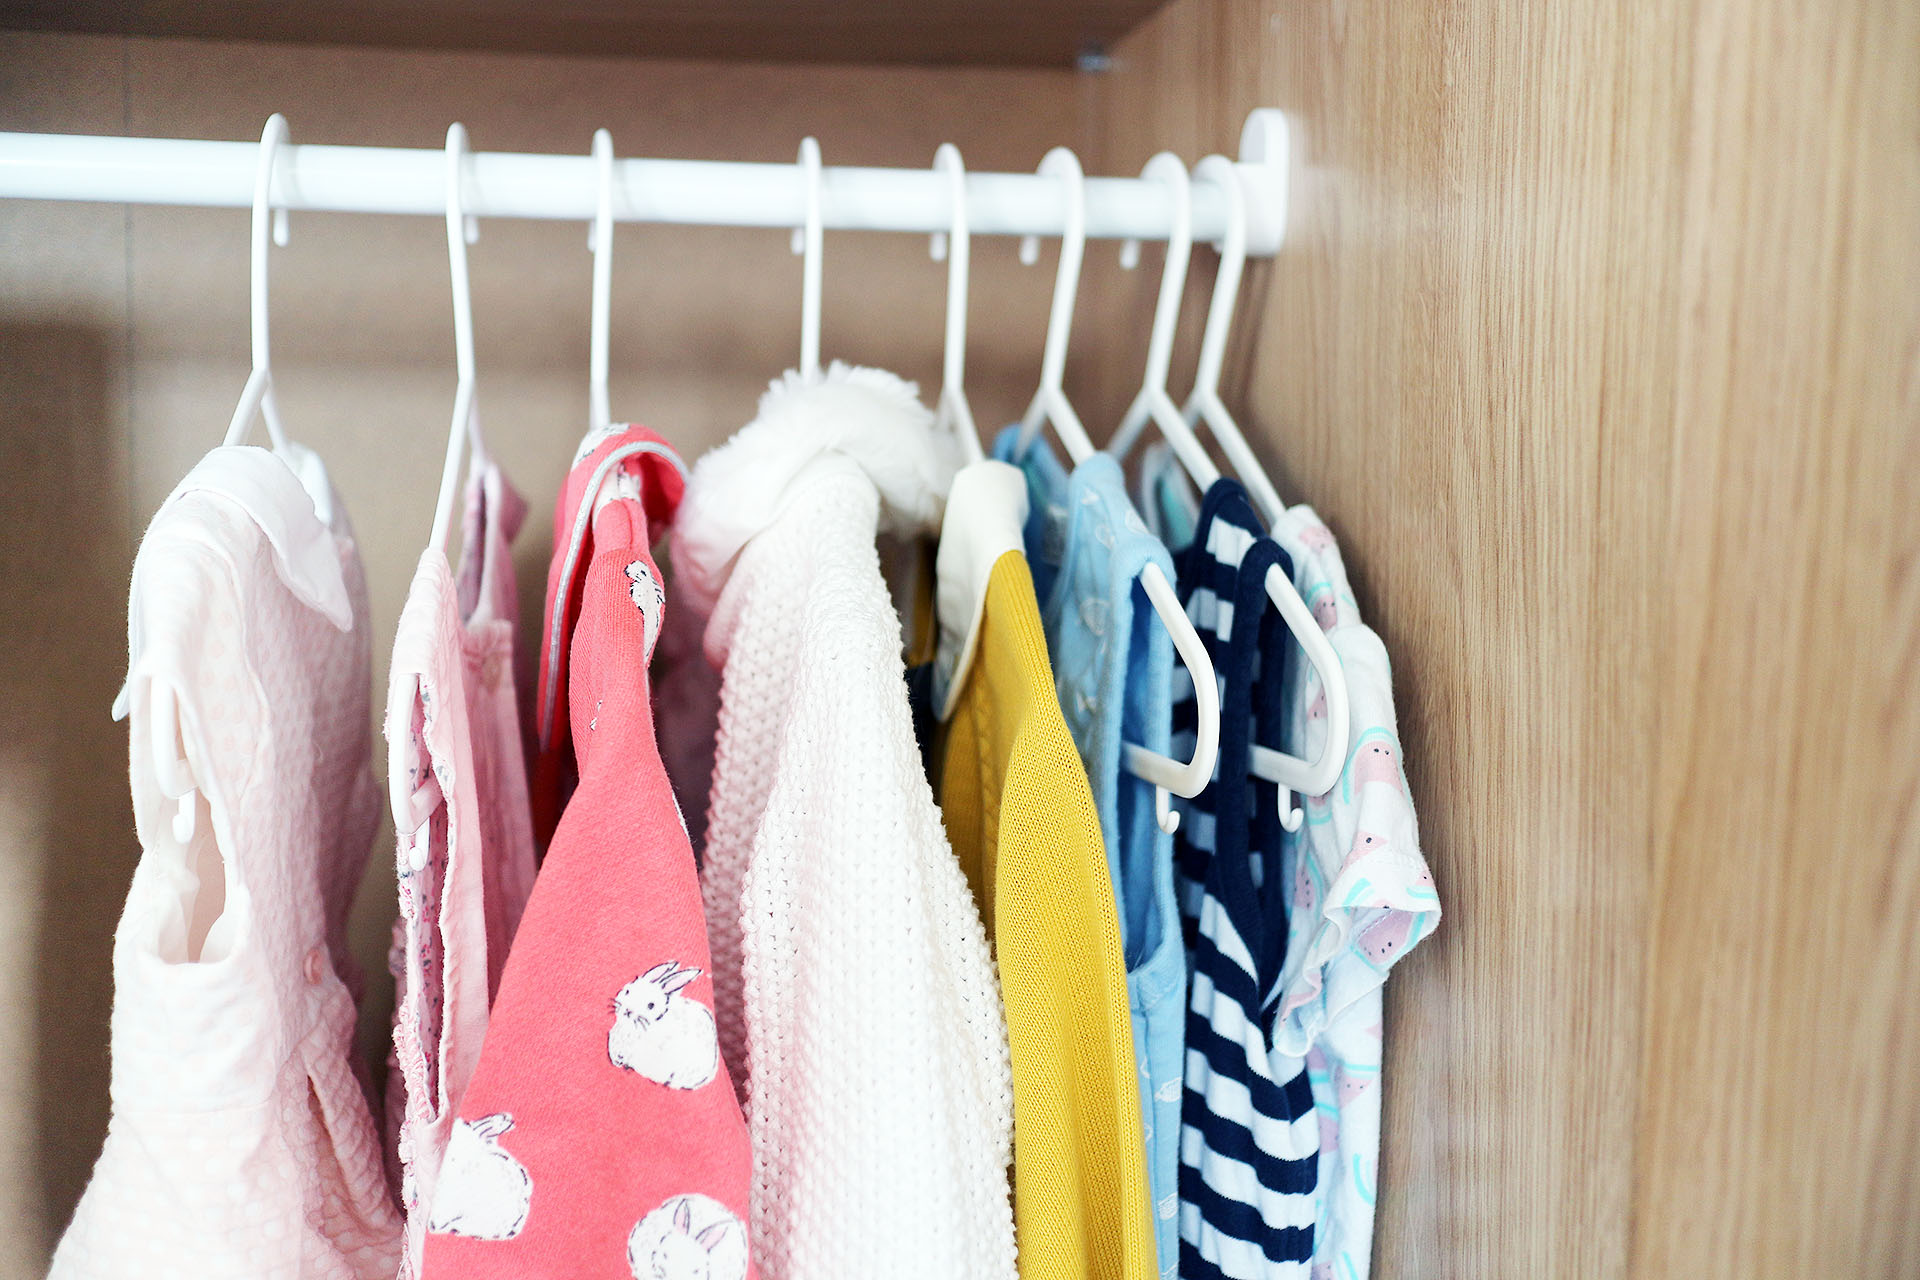 Minimalism + Kids - How to declutter and apply minimalism to your kids' closet or wardrobe. Top tips for decluttering, organising, buying less and donating to charity.